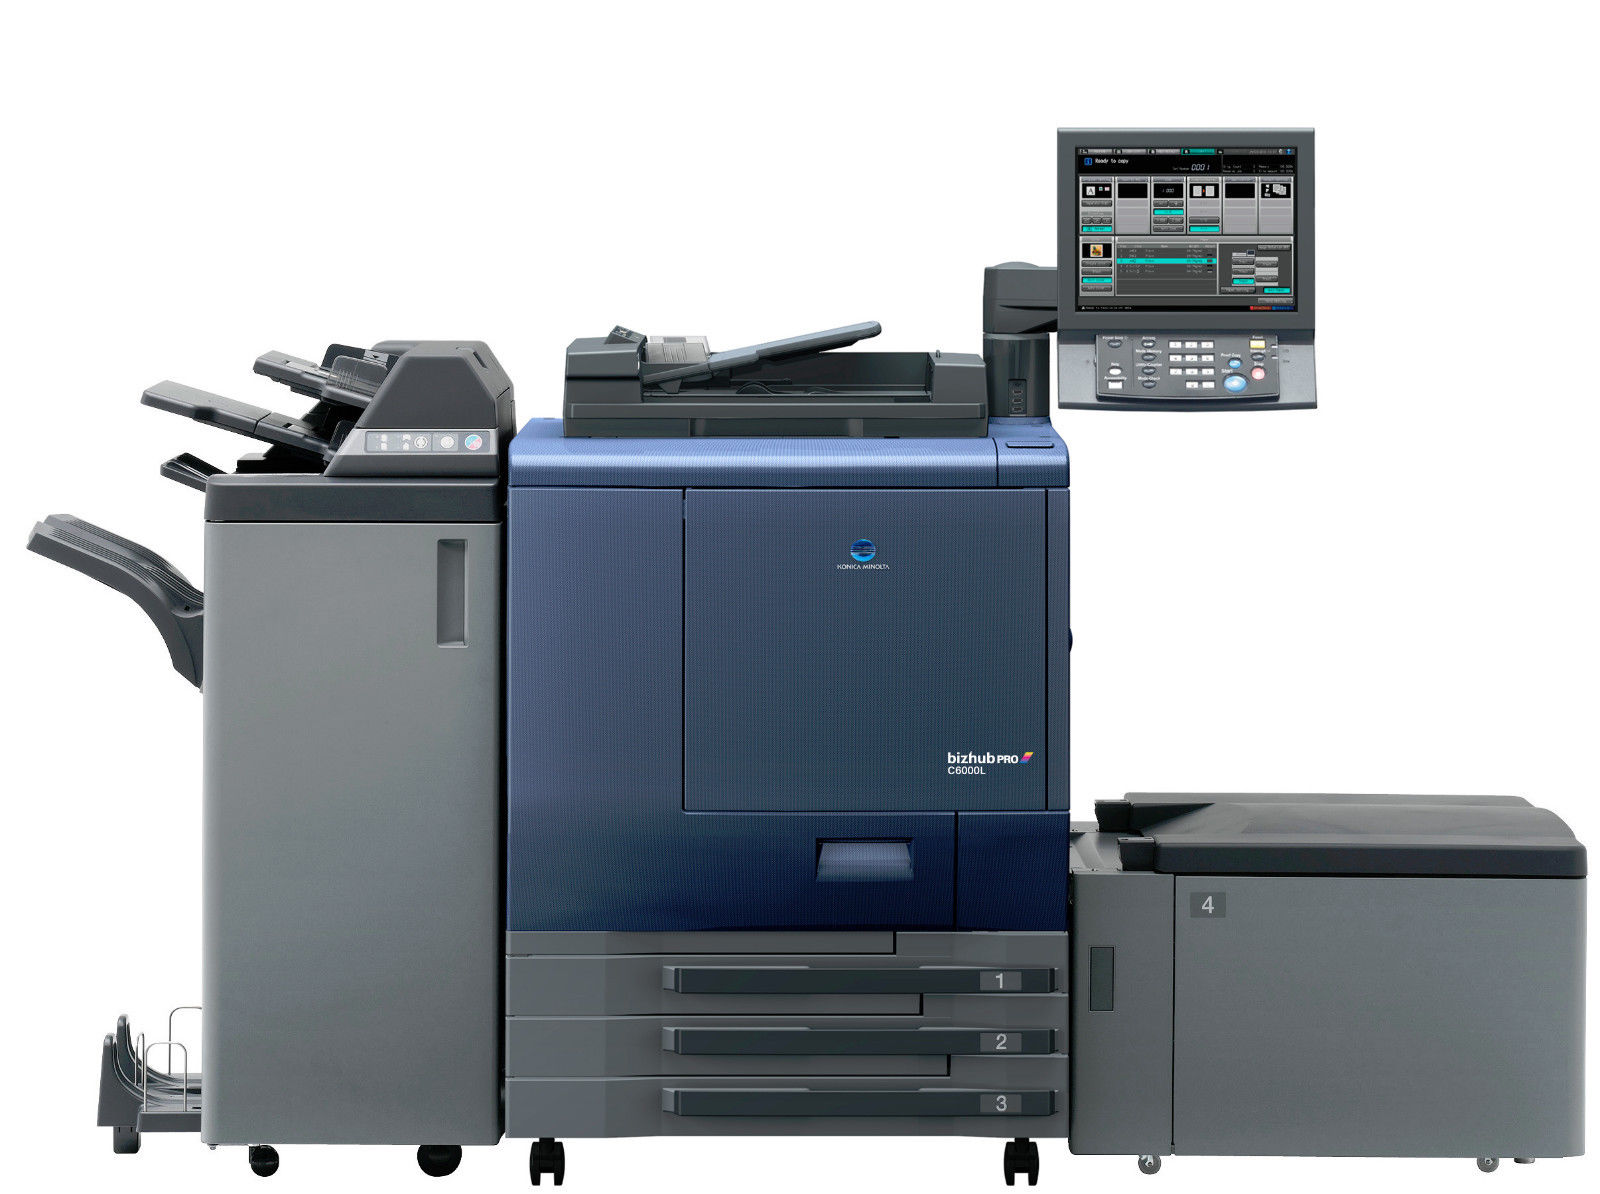 Konica Minolta Bizhub PRO C6000 Digital Copier Printer PS: We buy used Equip.